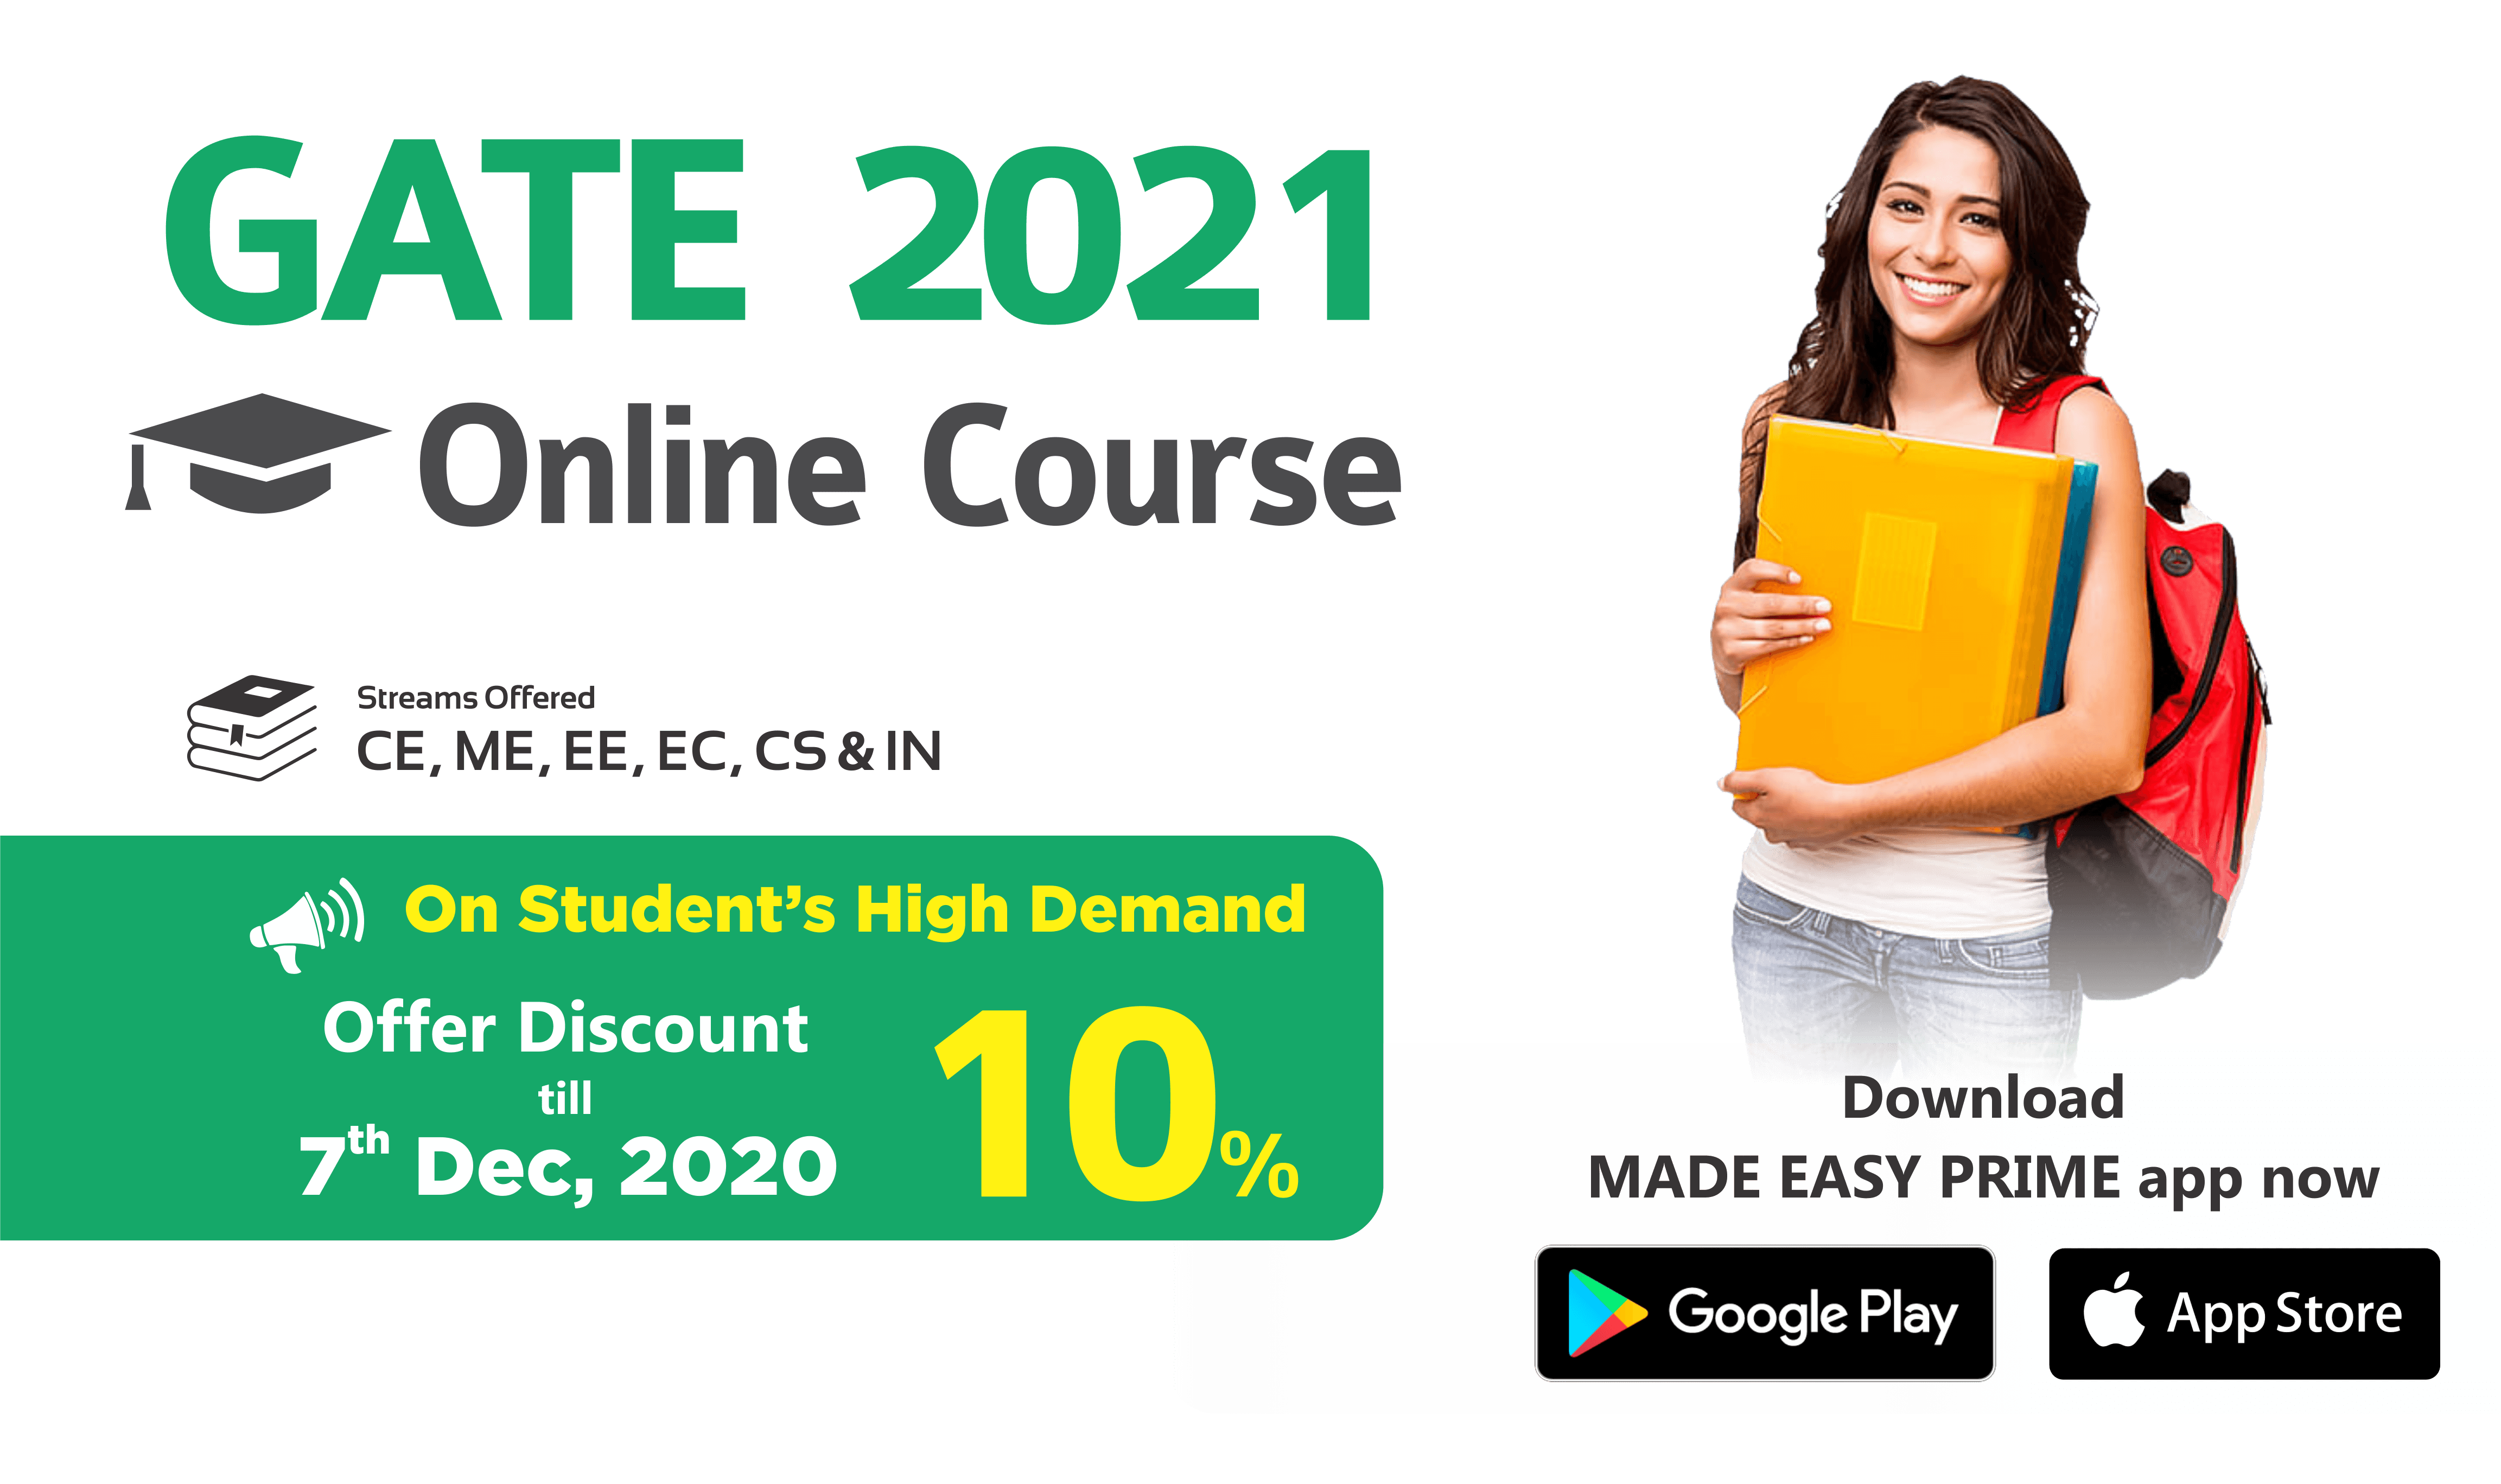 GATE 2021 Online Course